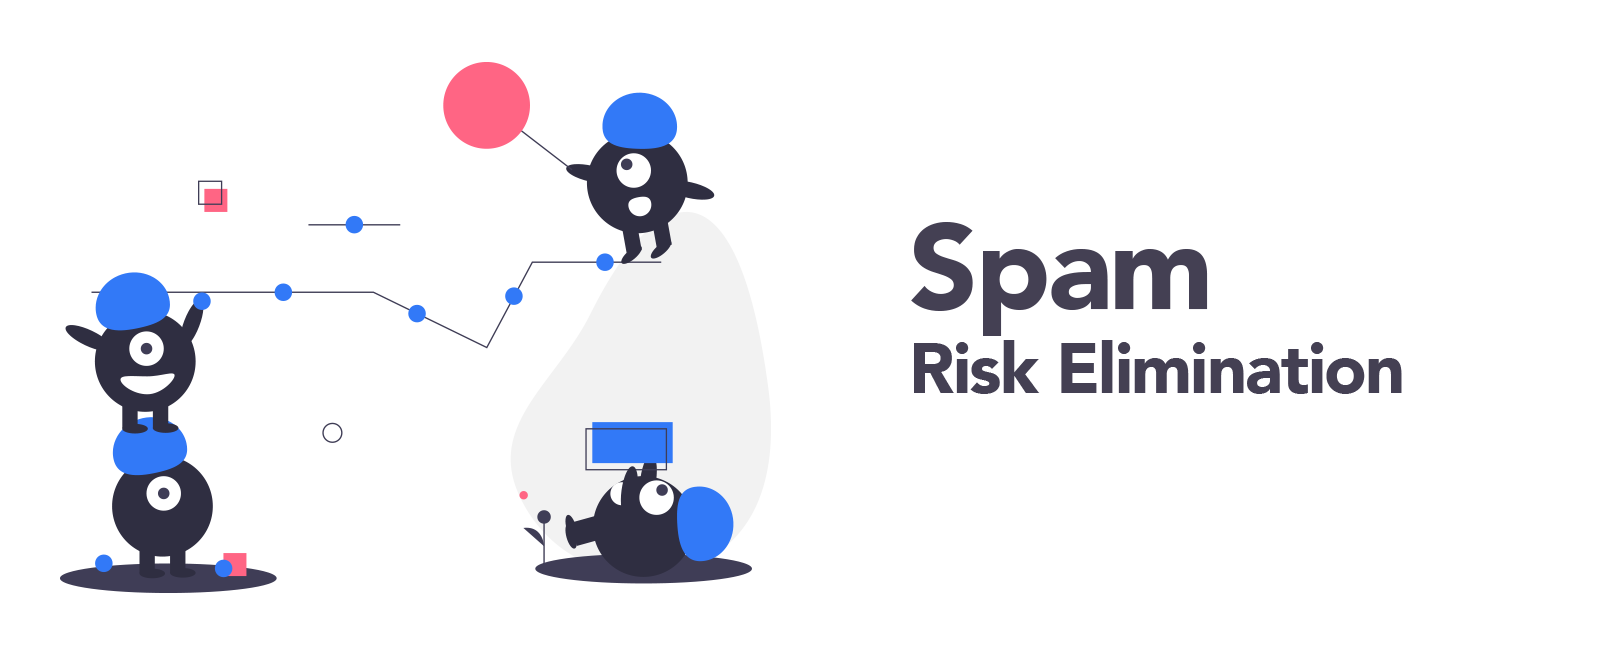 spam risk elimination illustration